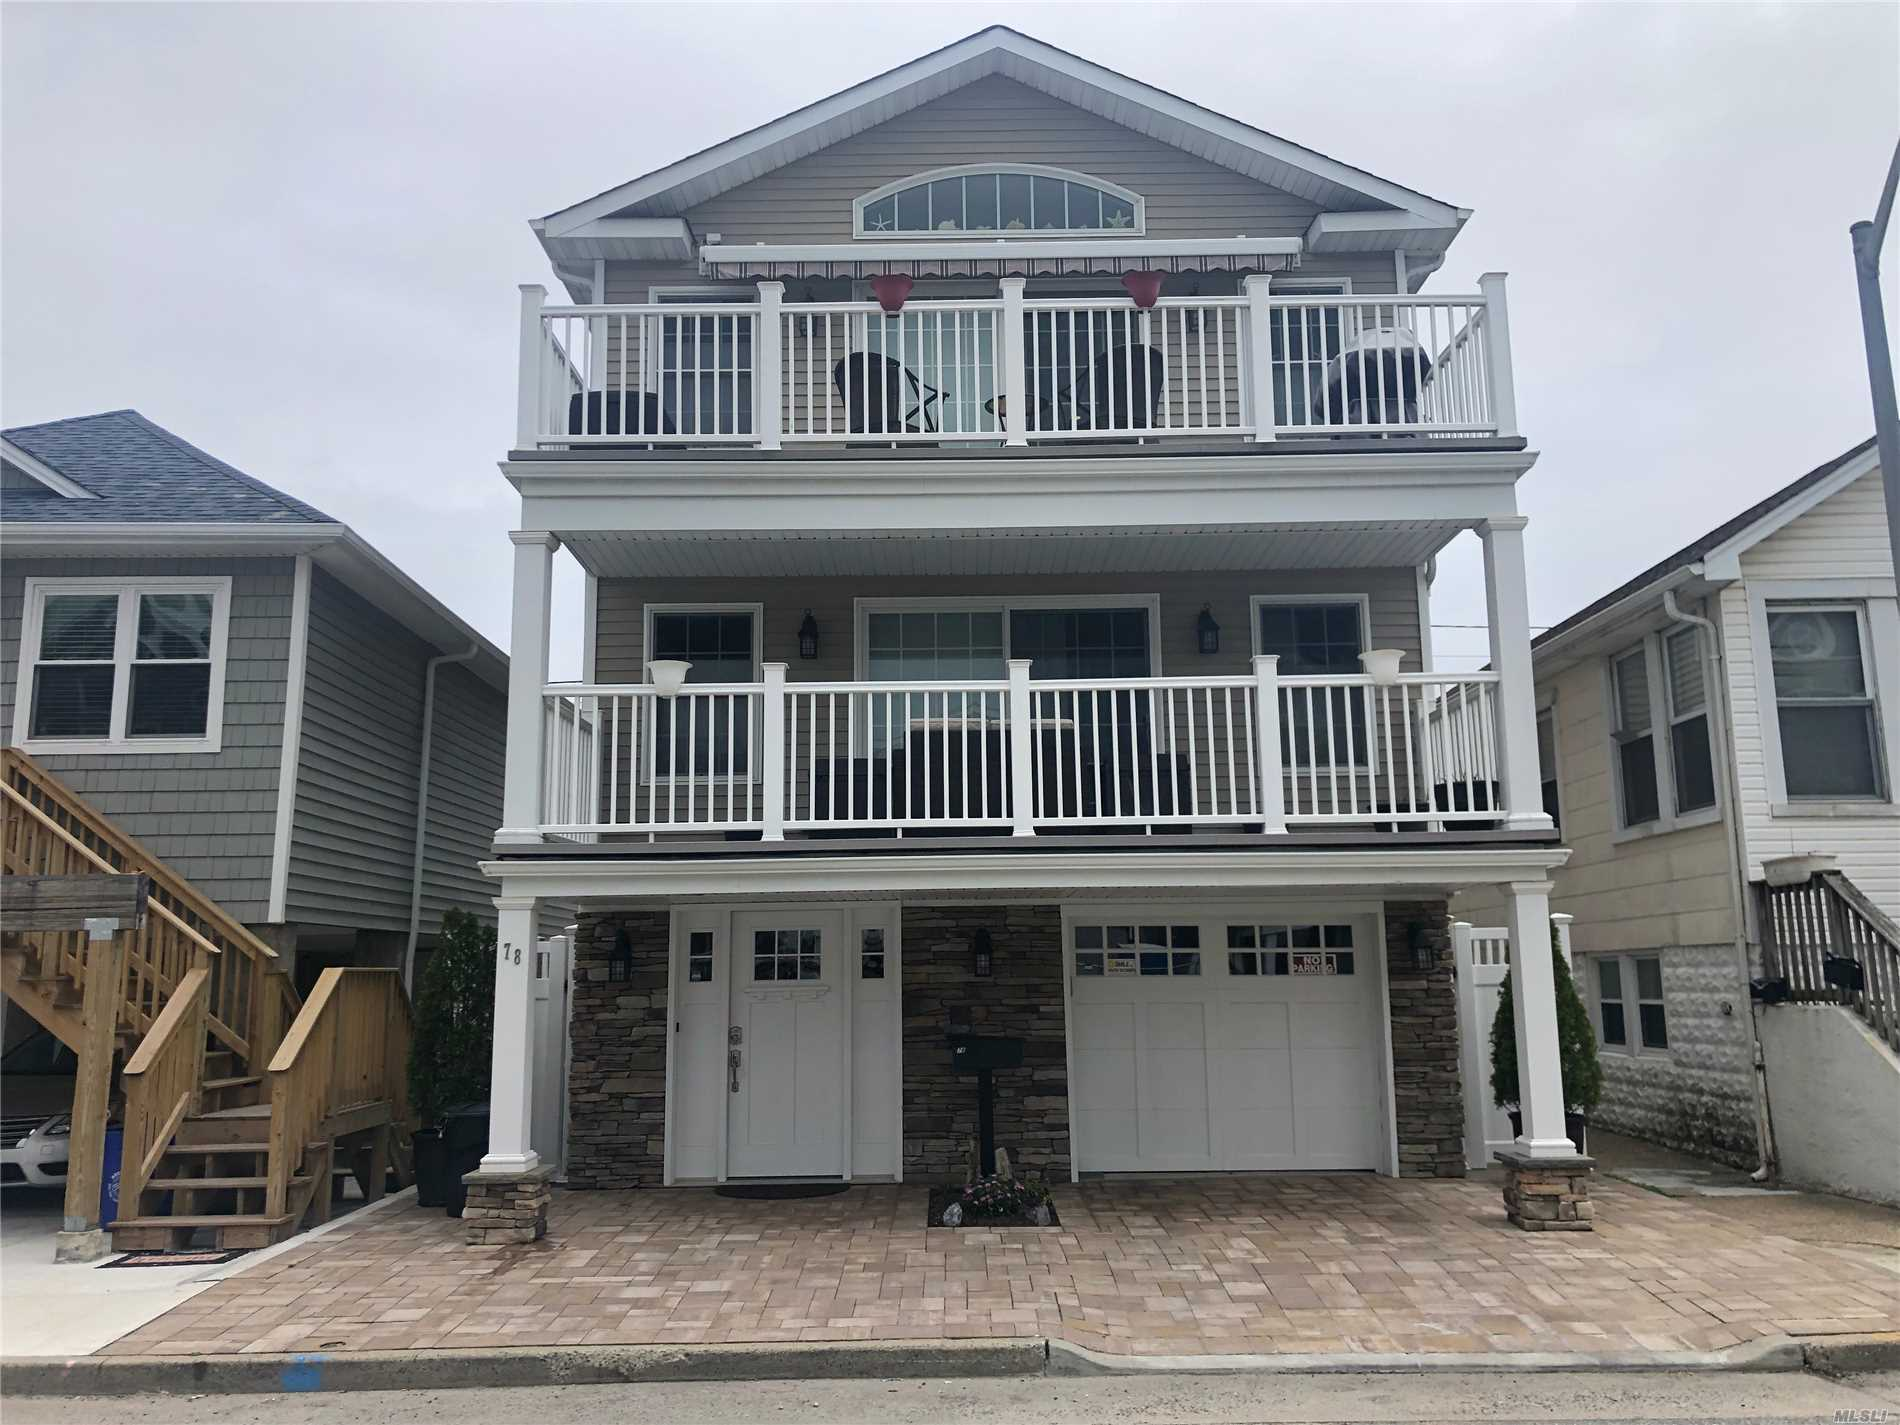 Immaculate! 2013 FEMA contemporary home on wide block, in the trendy West End. Features: Grand open layout with cathedral ceiling and 8' slider leading to a large deck. Views of ocean, bay and gorgeous sunsets. Master bedroom with WIC and En Suite. Two large bedrooms with den and large storage room and 2 1/2 car garage with keyless entry. Dual zone heat and CAC, high-end appliances and fixtures, motorized awning, gorgeous oak flooring and floating stairs , Bali shades and quartz countertops.